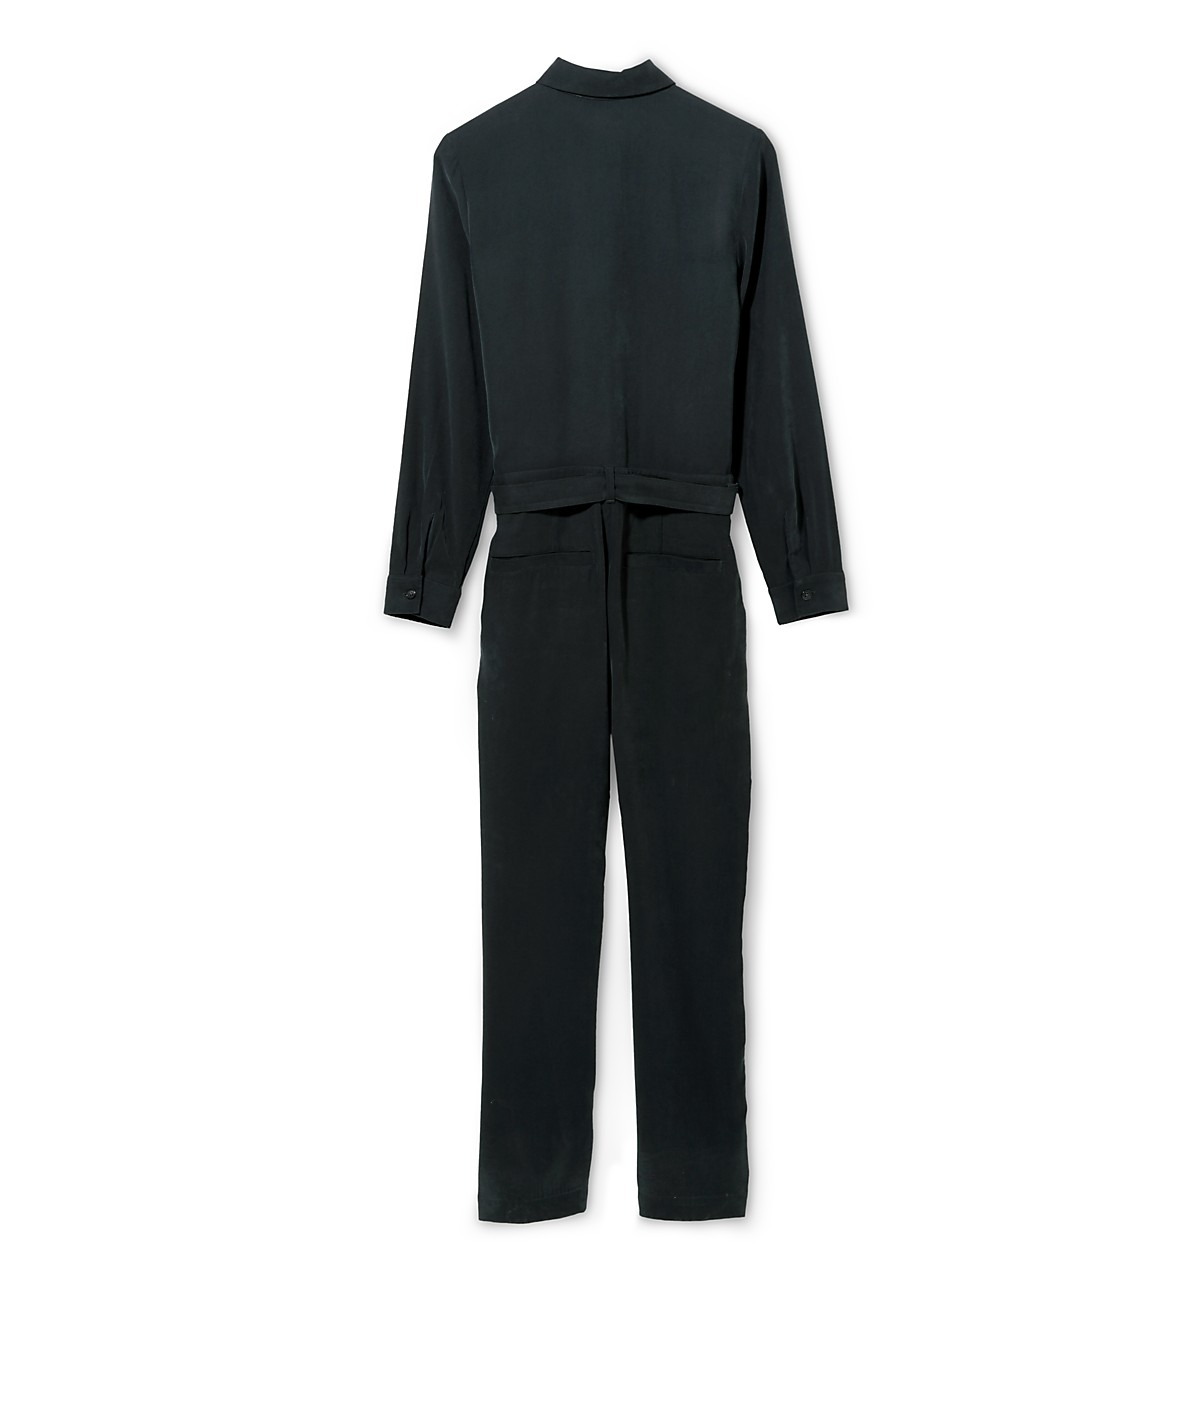 Jumpsuit F2172652 from liebeskind